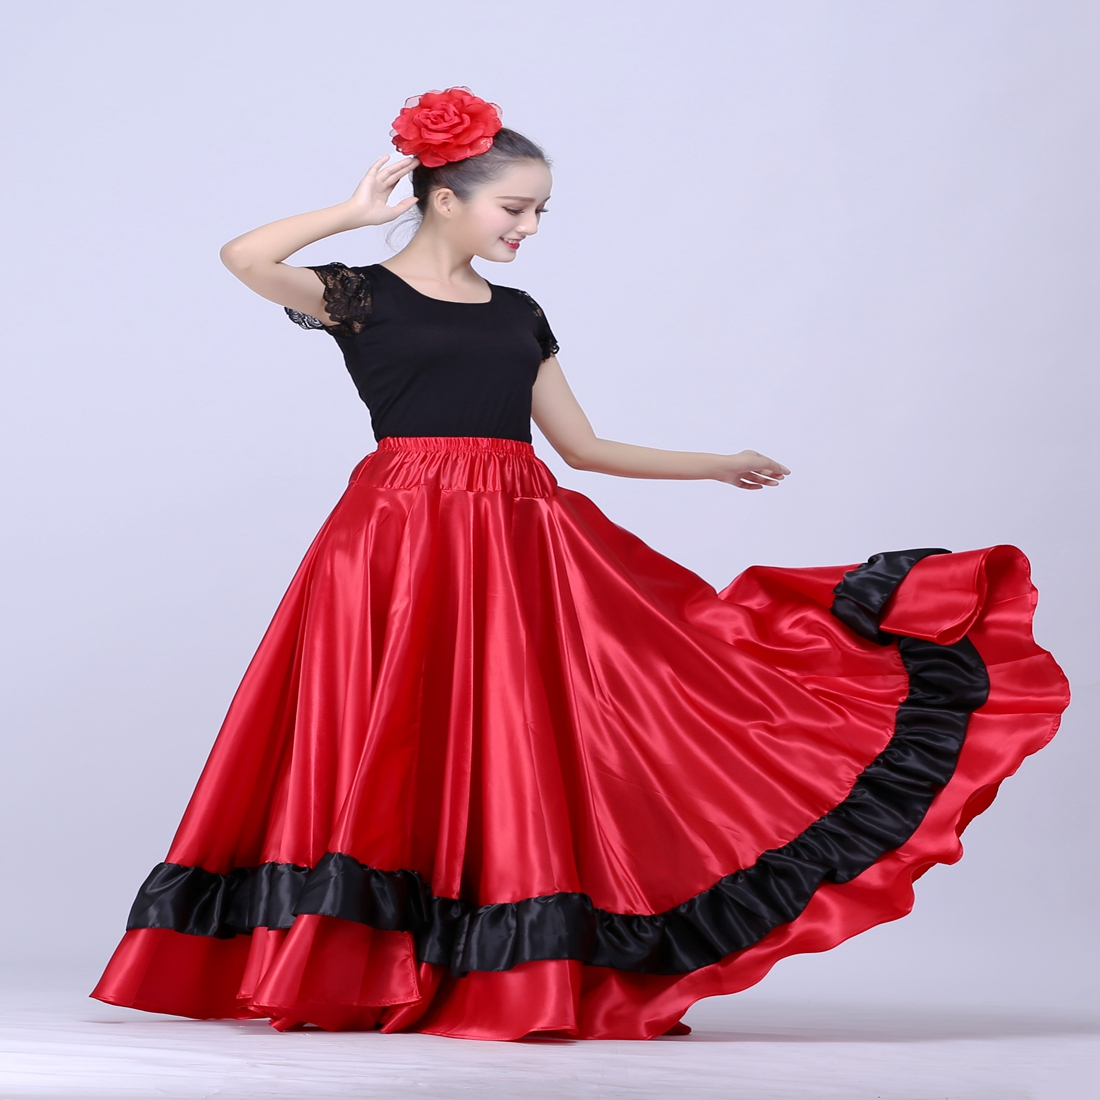 Spanish Flamenco Skirt  Belly Dance Skirt  Spanish Clothing  Spanish Dance Costumes Brazil Dance Costume Gypsy Ro Flamenco Dress